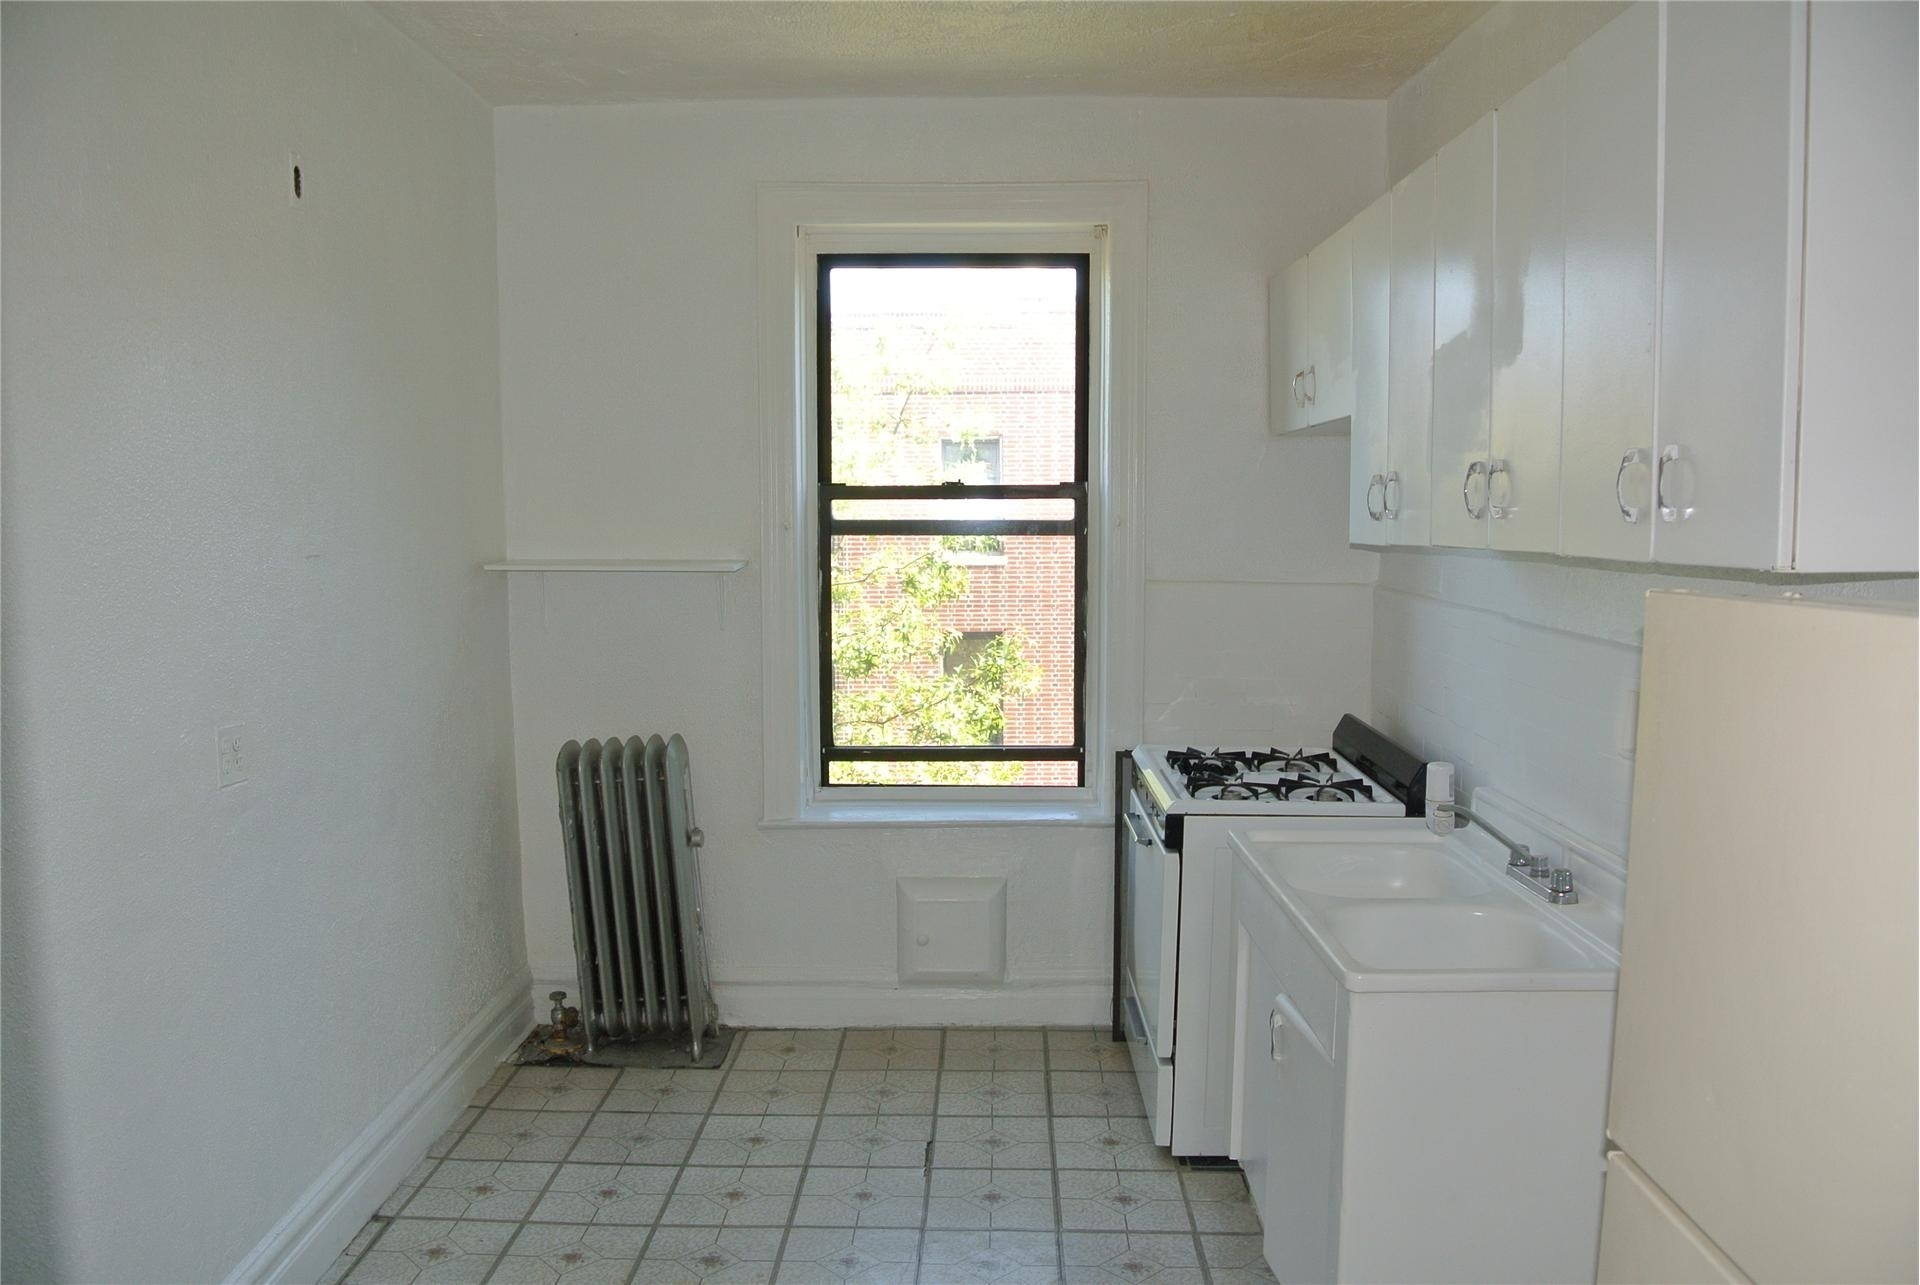 16. 建於1035 Willmohr St, East Flatbush, Brooklyn, NY